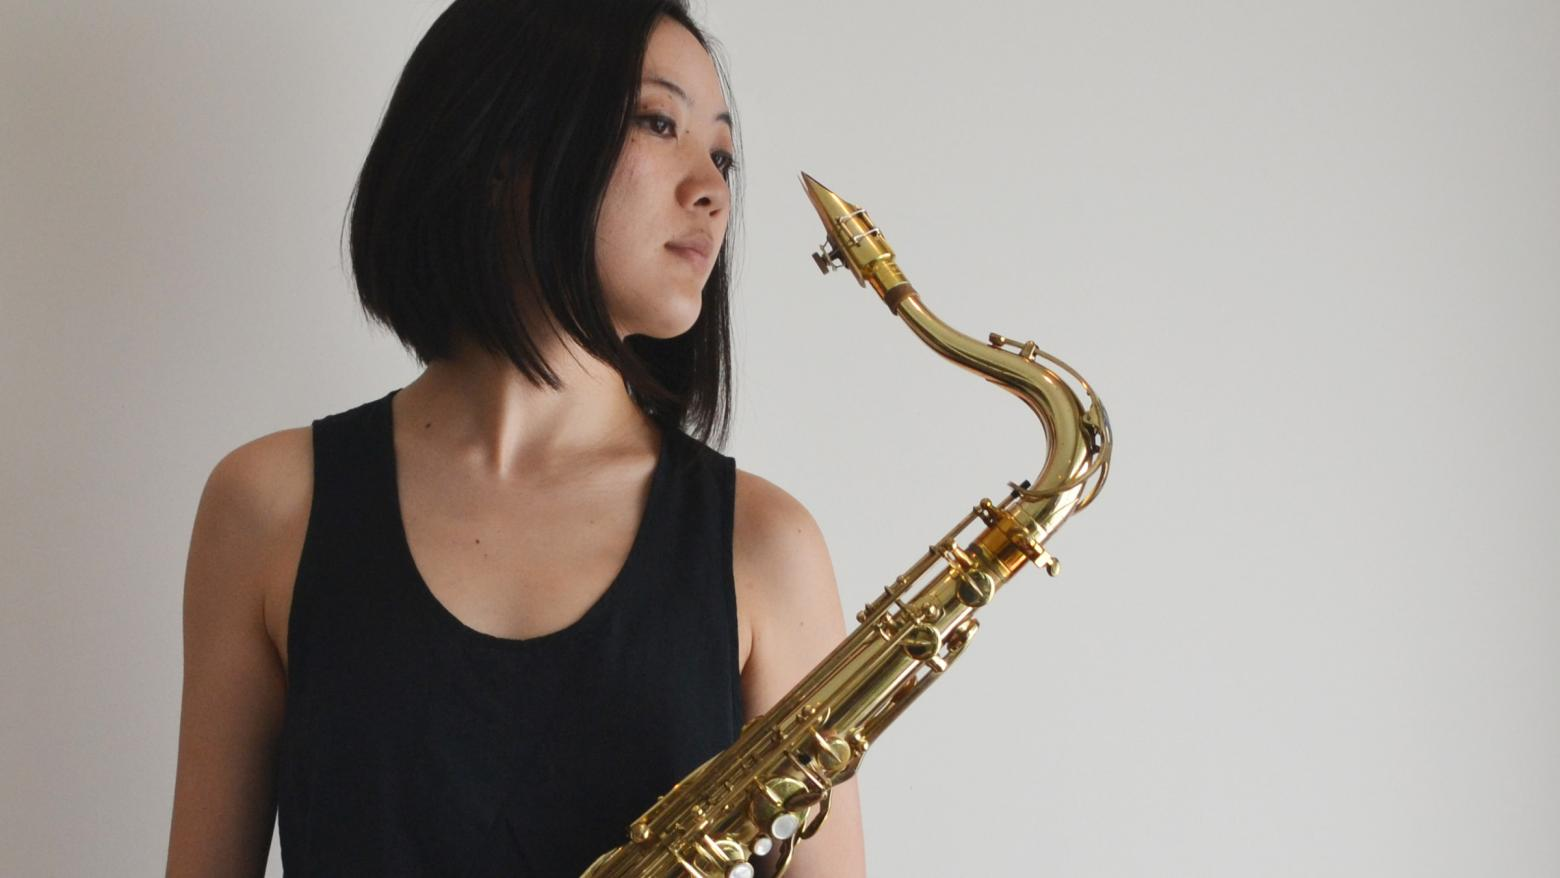 Hitomi Oba photograph, with brass instrument